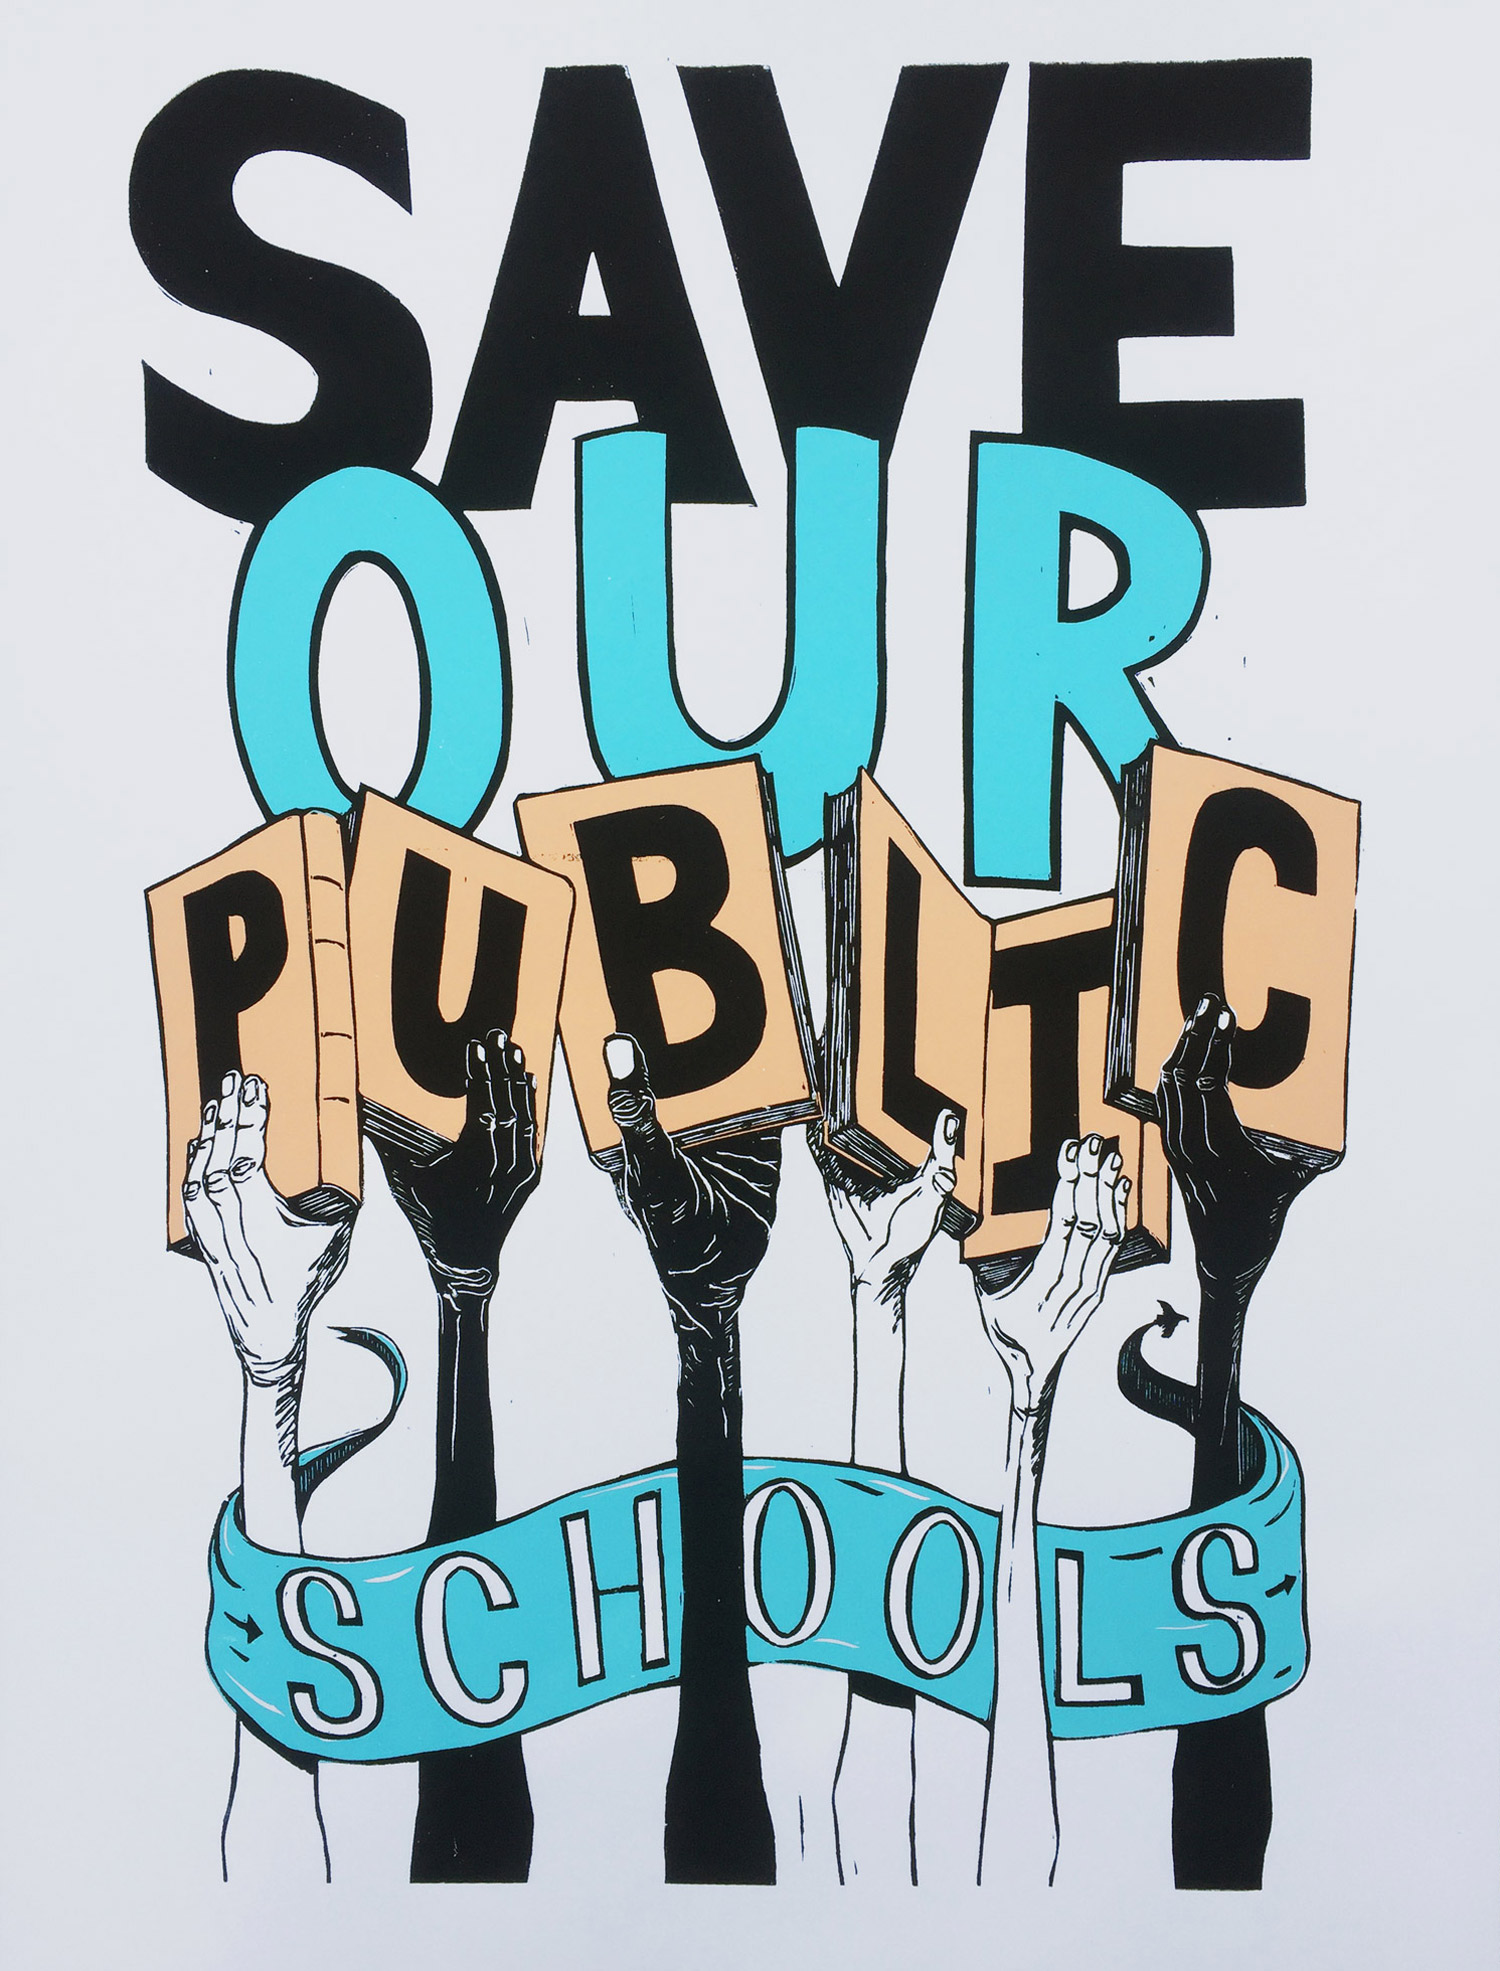 Graphic of Pete Railand of the Just Seeds art collective that reads Save Our Public Schools